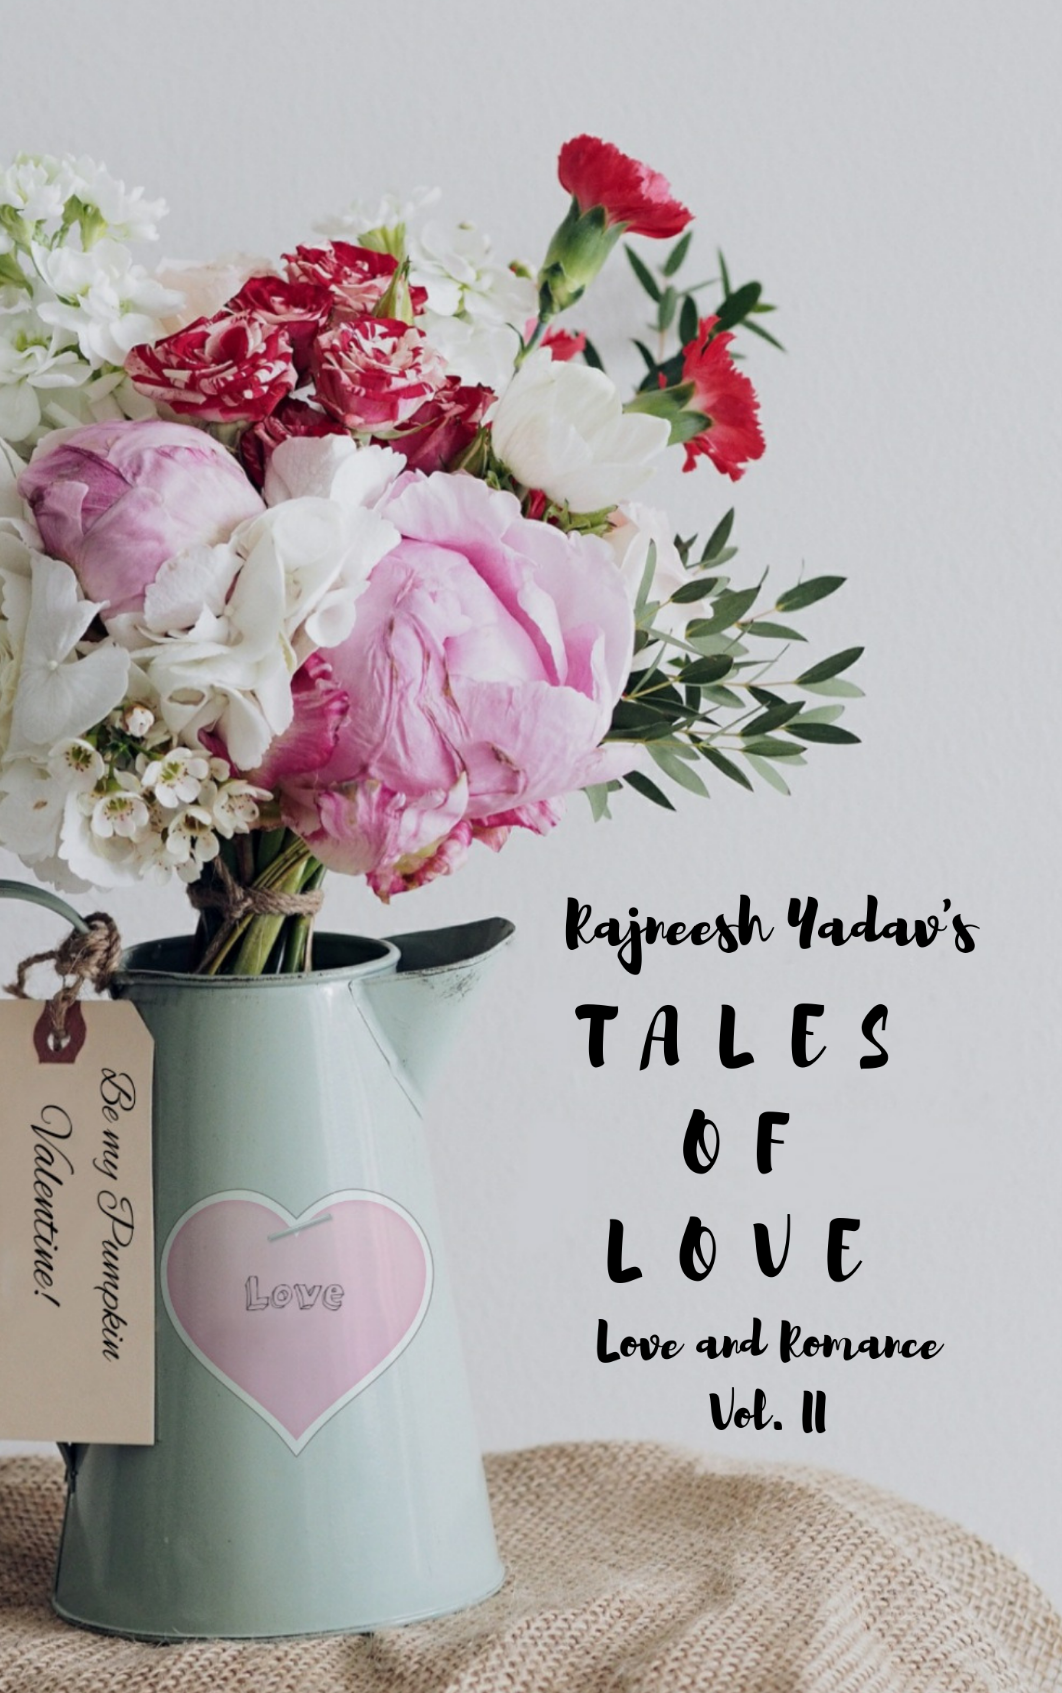 Tales of Love (Love and Romance Vol. II)